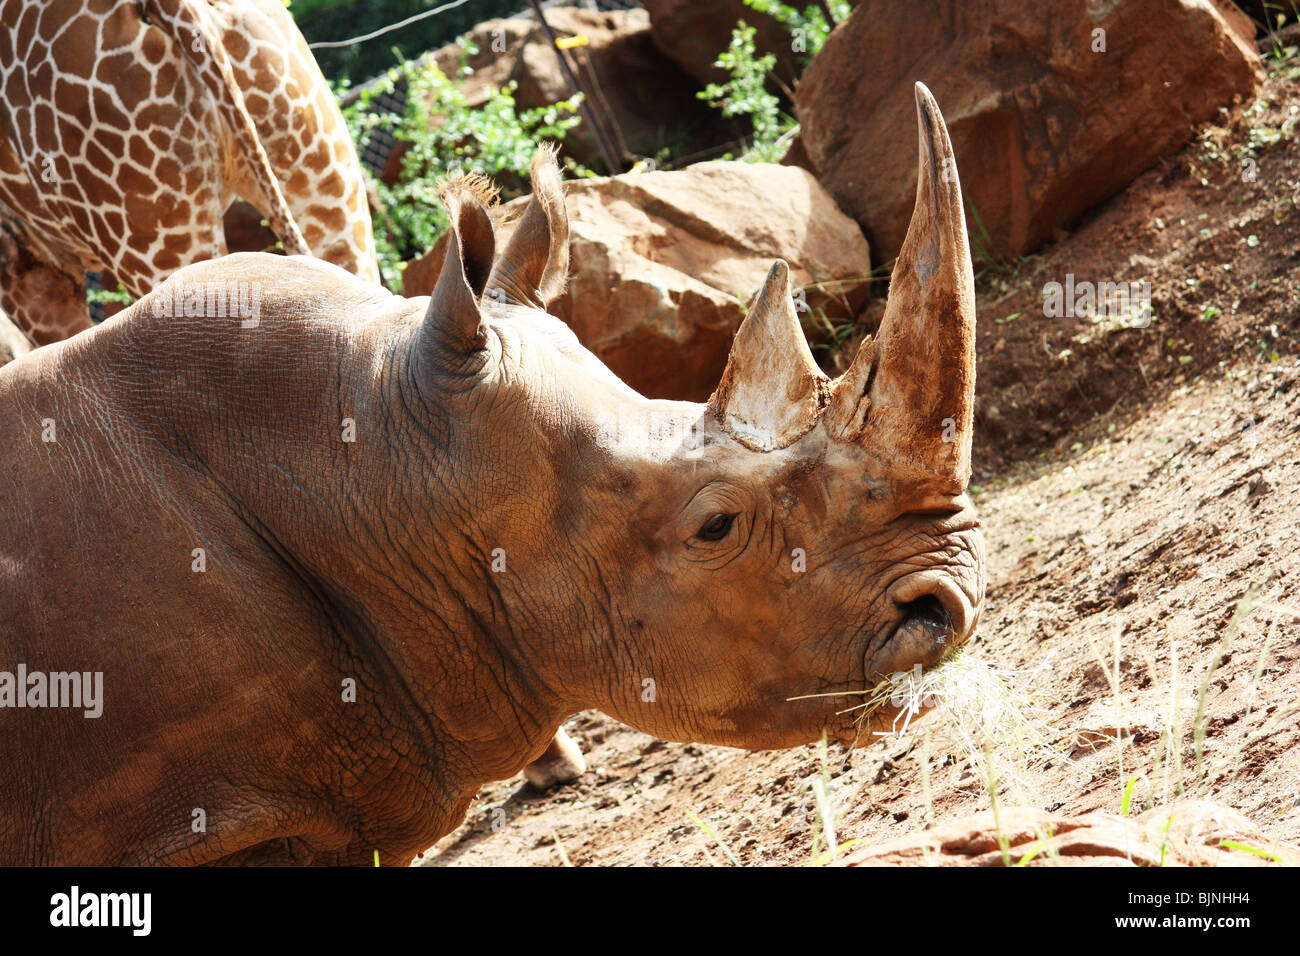 CLOSE UP SIDE VIEW  OF WHITE RHINOCEROS HORIZONTAL BDB Stock Photo